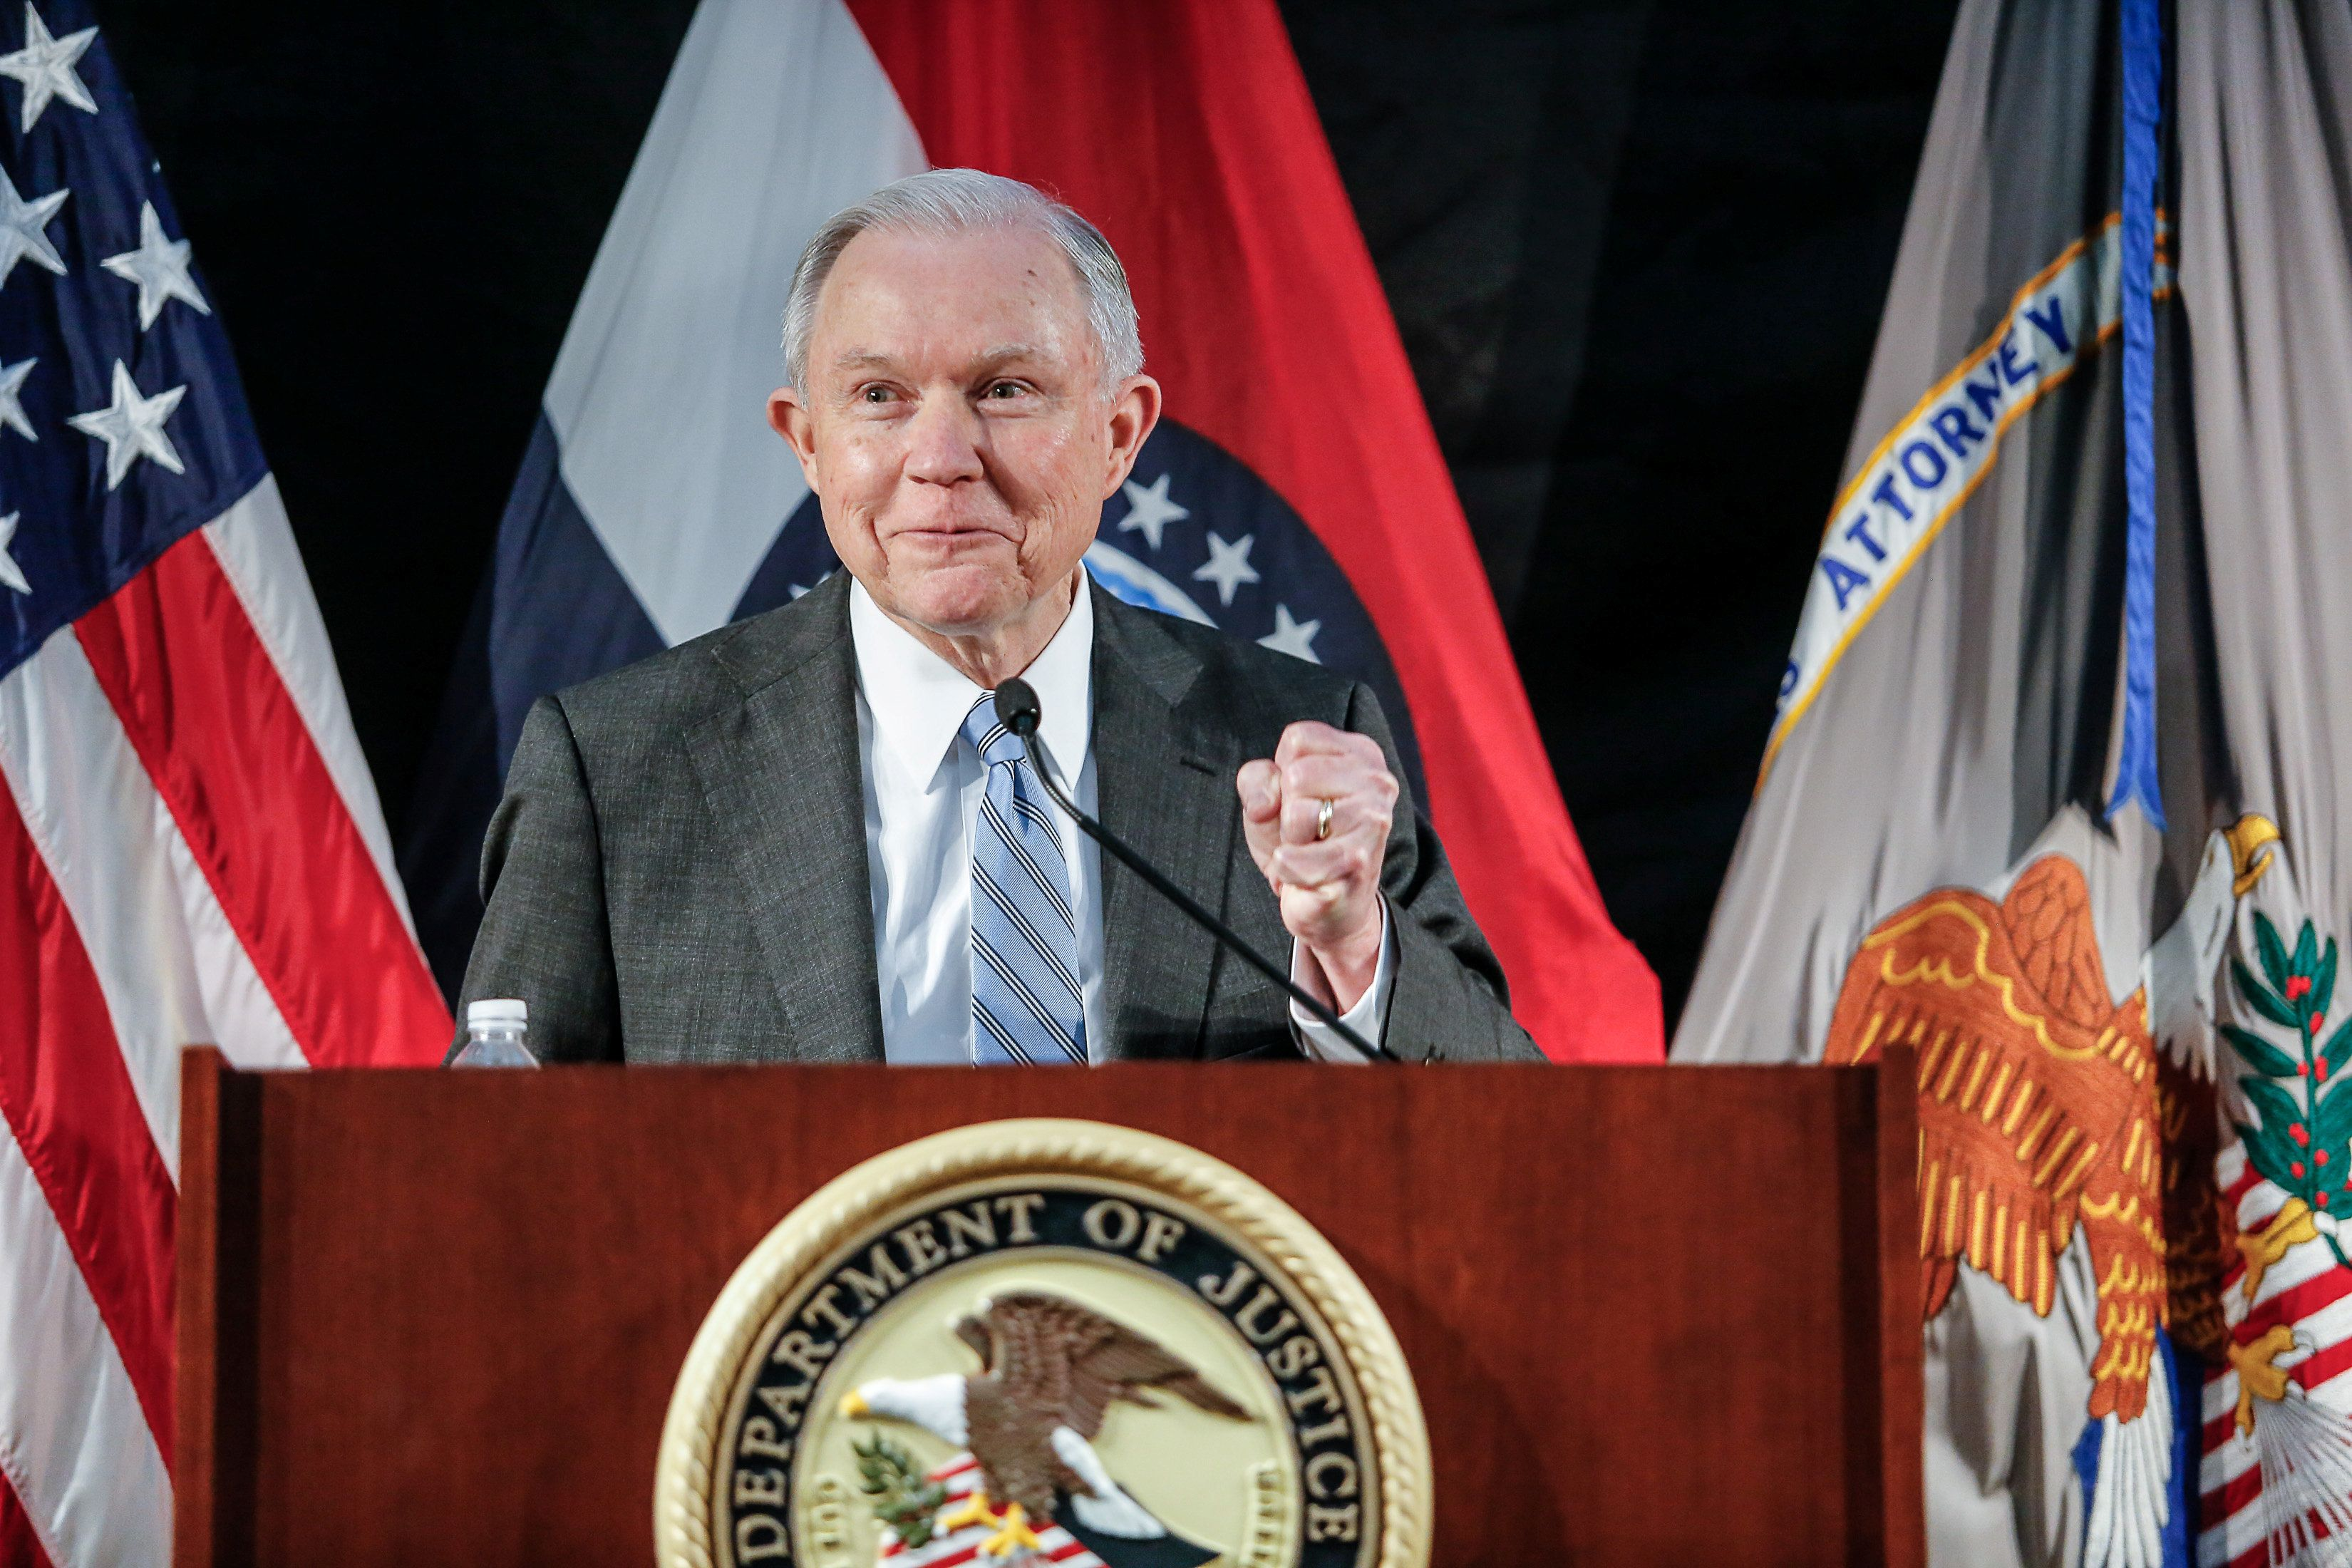 U.S. Attorney General Jeff Sessions speaks to law enforcement officers at the Thomas Eagleton U.S. Courthouse in St. Louis Missouri, U.S. March 31, 2017.  REUTERS/Lawrence Bryant